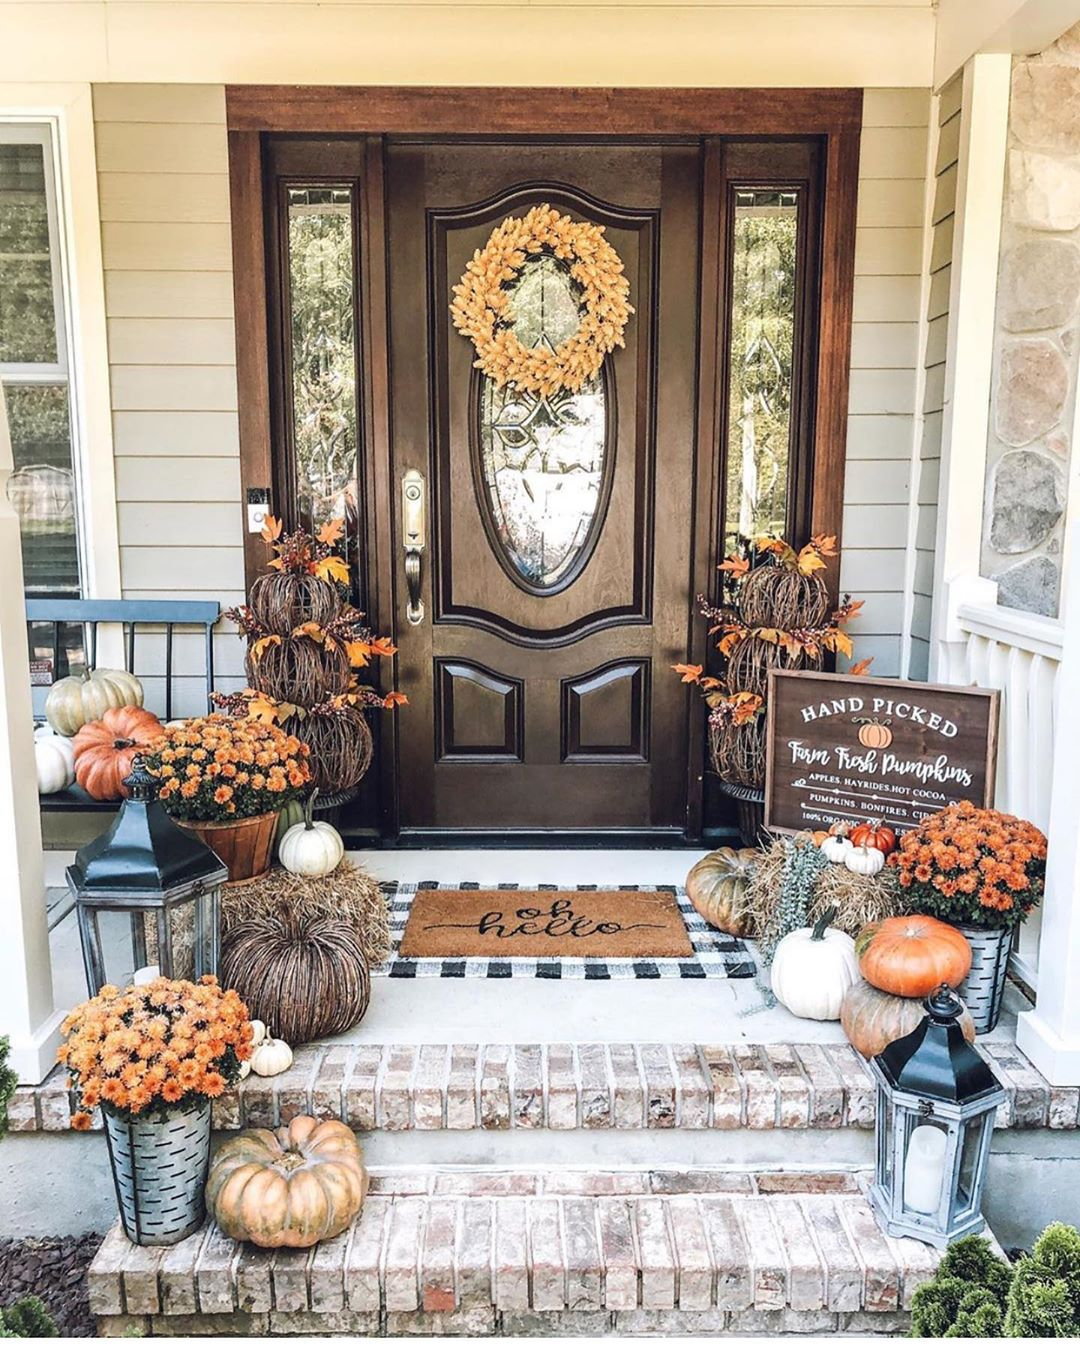 1569404385 280 front porch decor ideas to welcome fall with - Front Porch Decor Ideas To Welcome Fall With